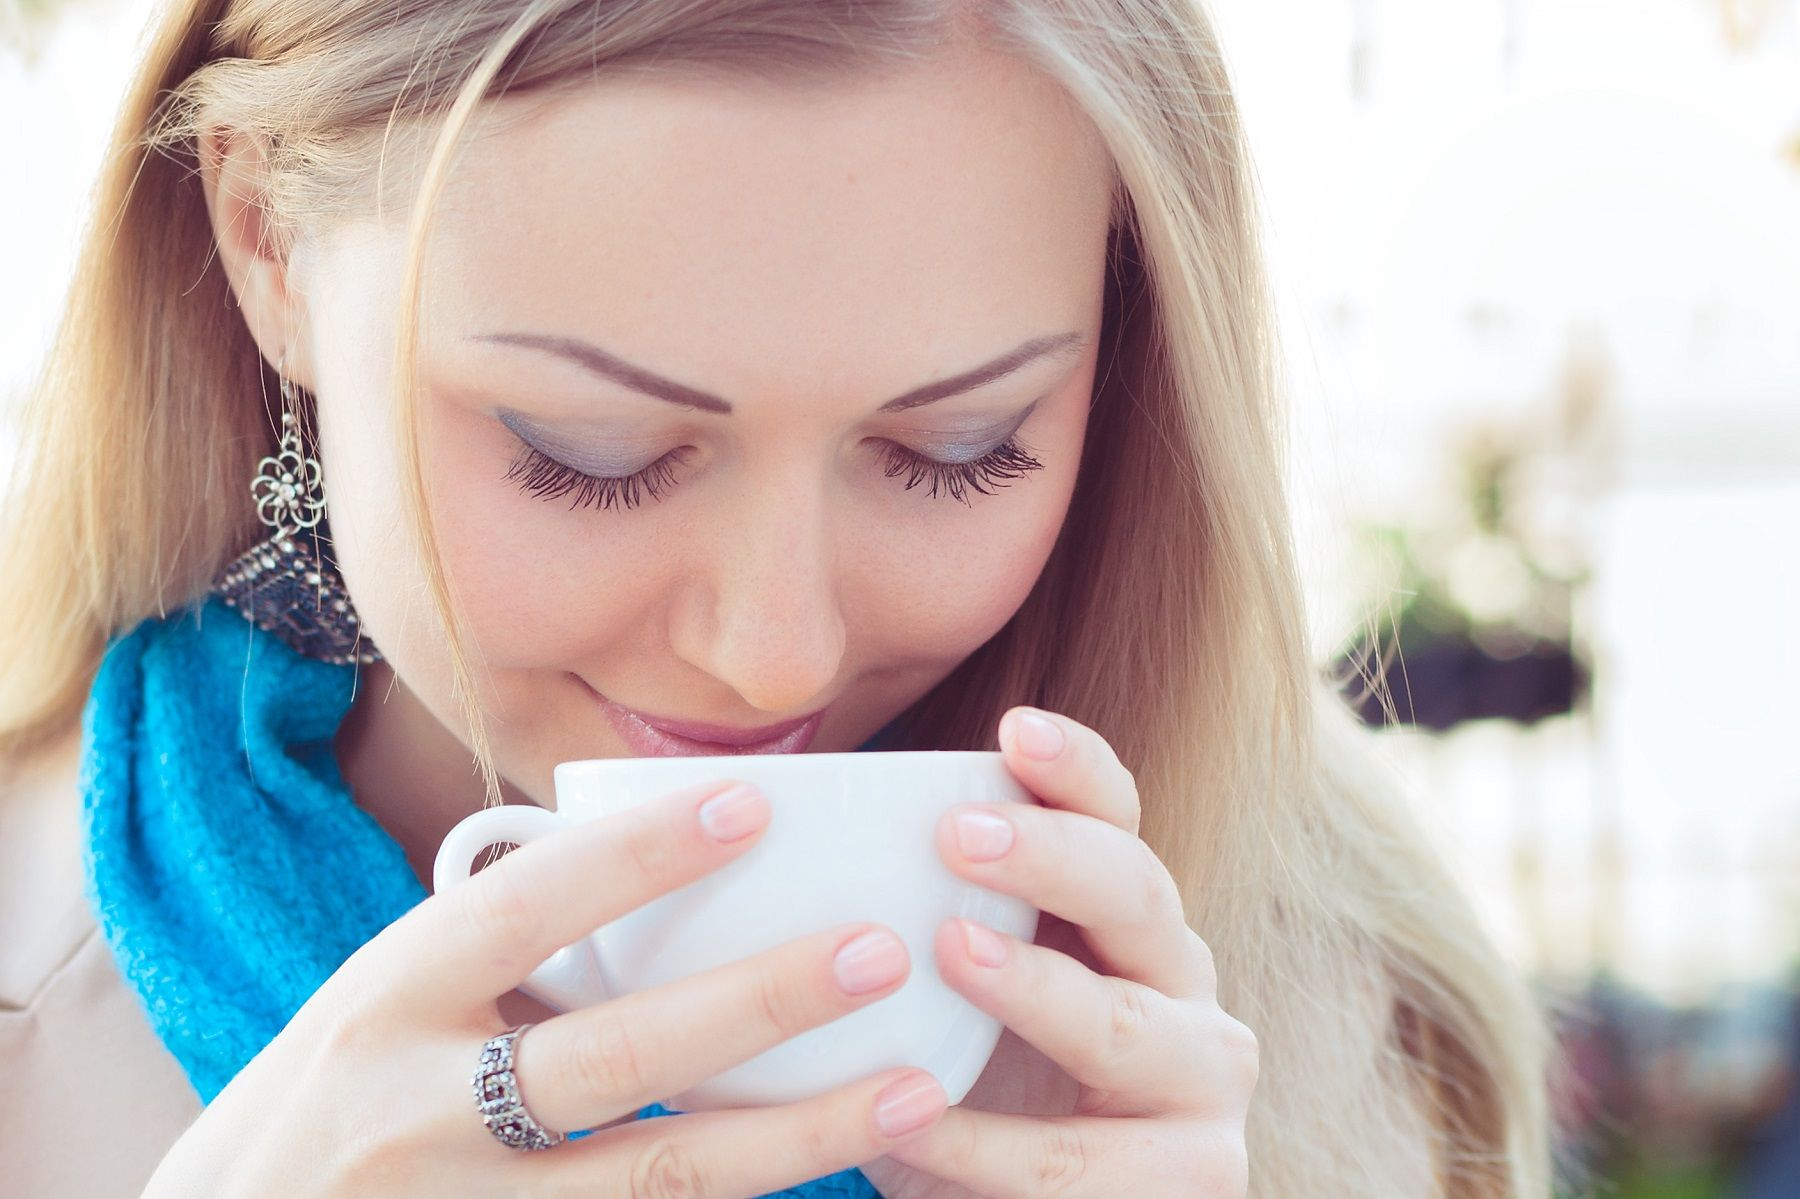 Woman smelling coffee - iStock/Getty Images